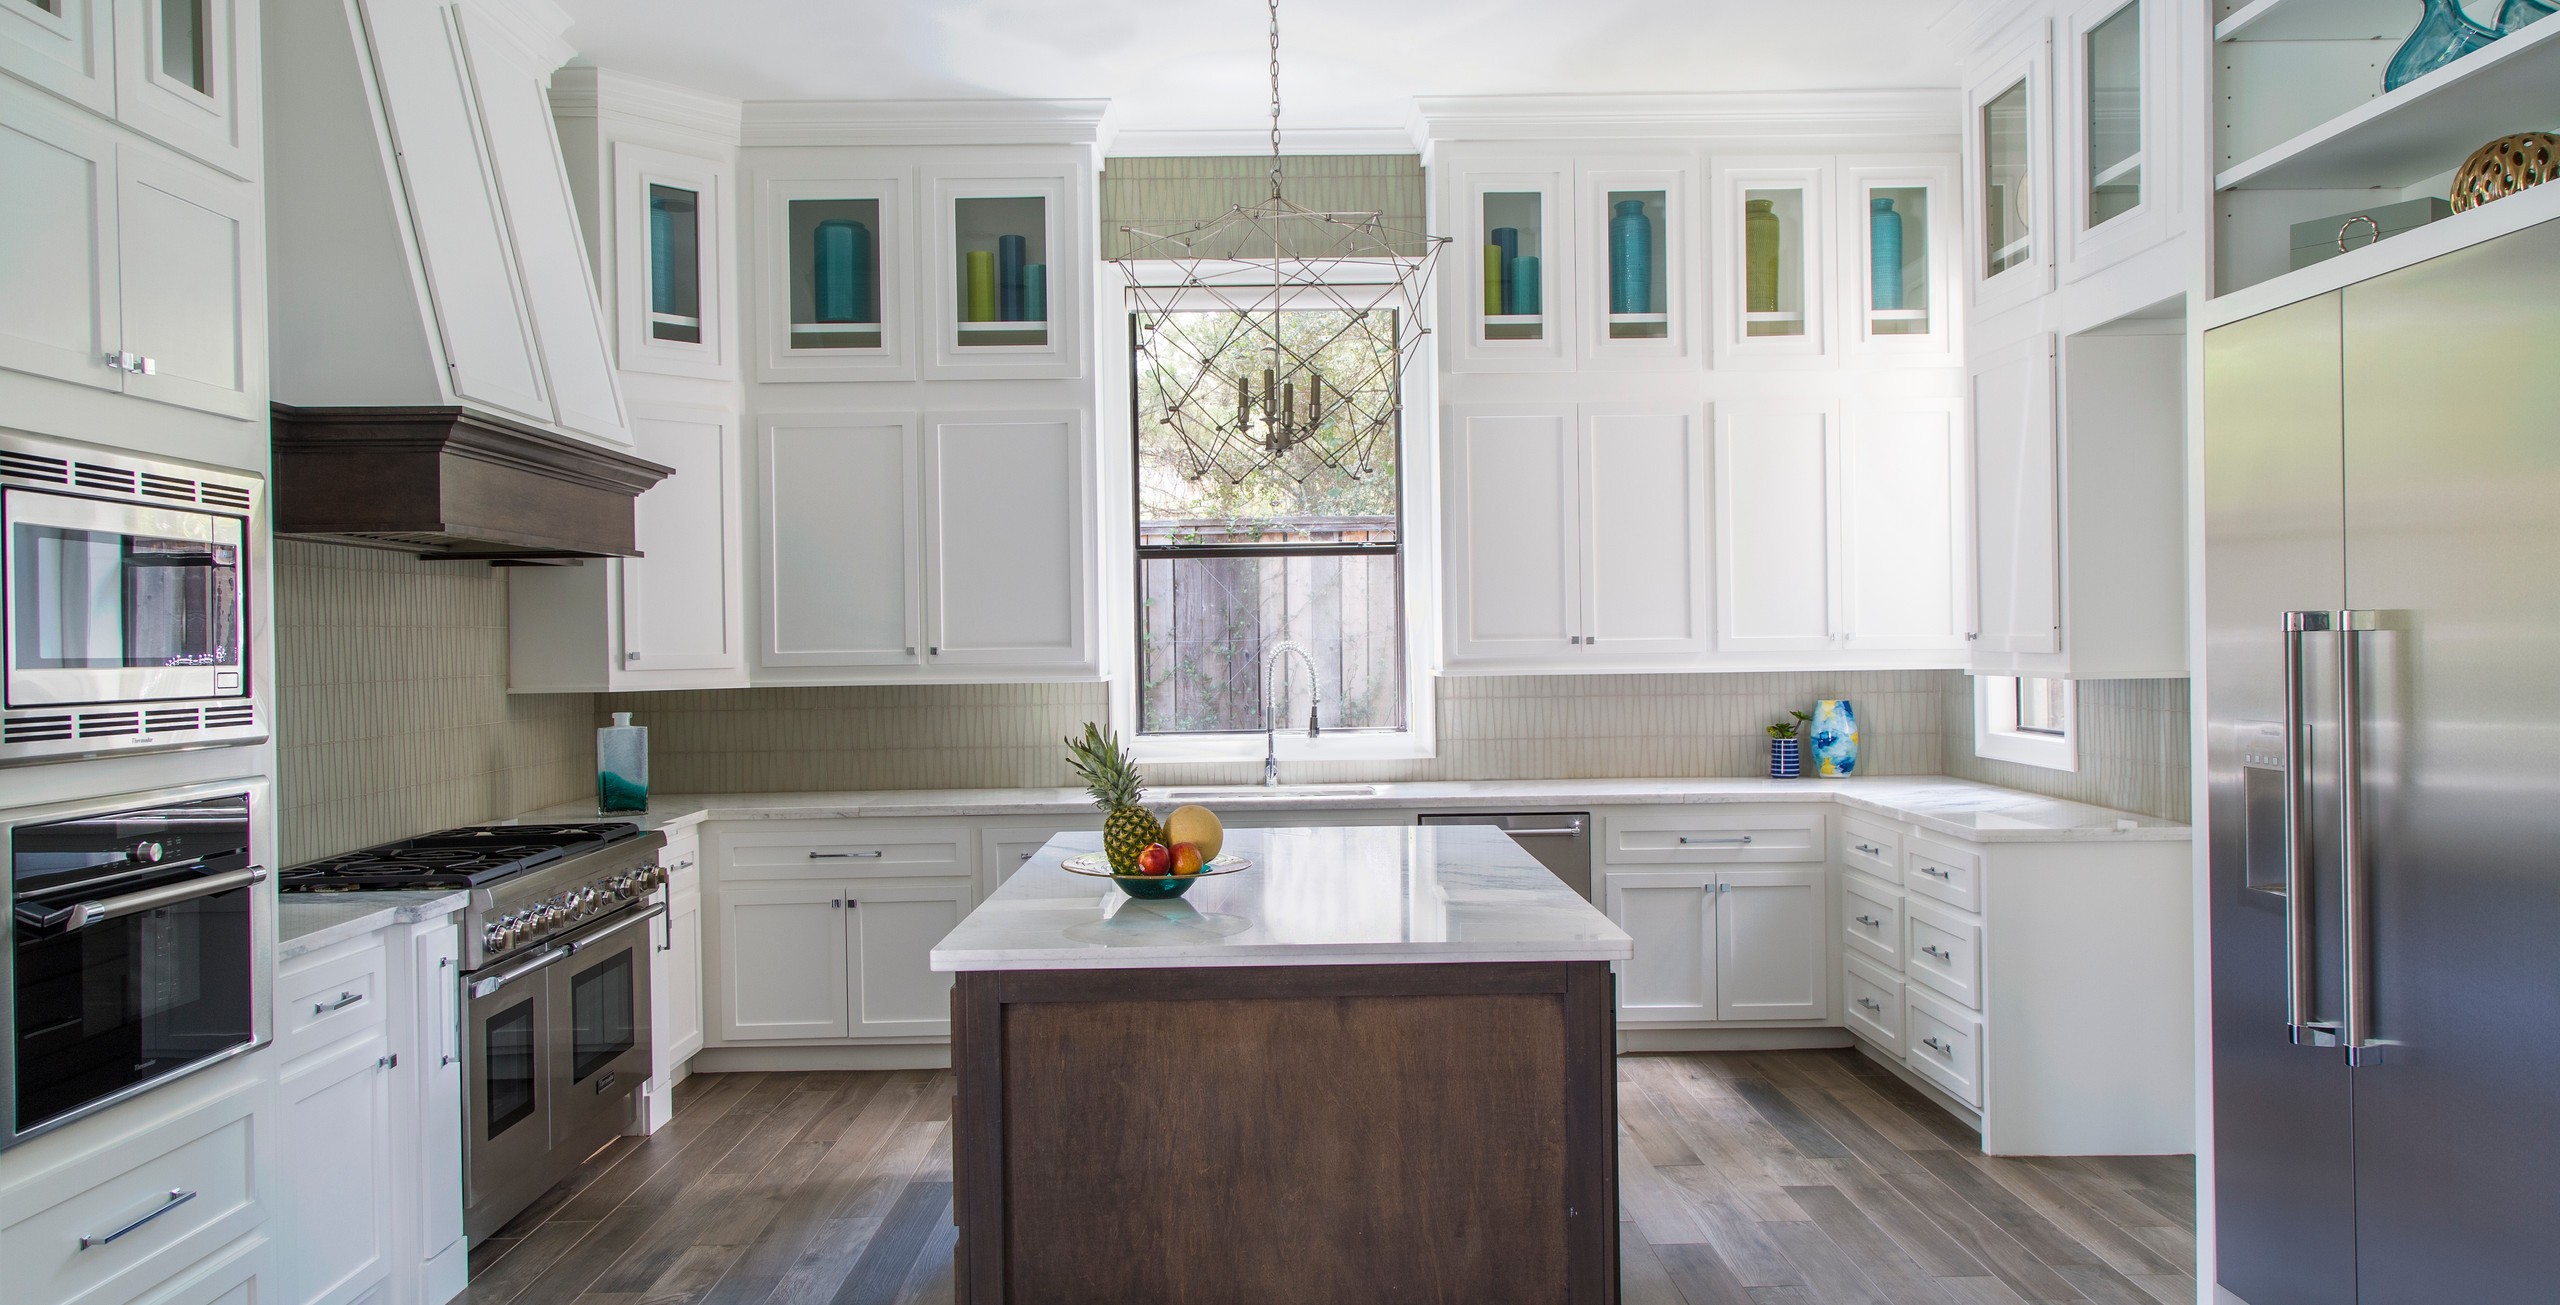 White kitchen of a transitional home in the Woodlands, TX. Kitchen designers in the woodlands, tx. interior designers in the Woodlands, TX